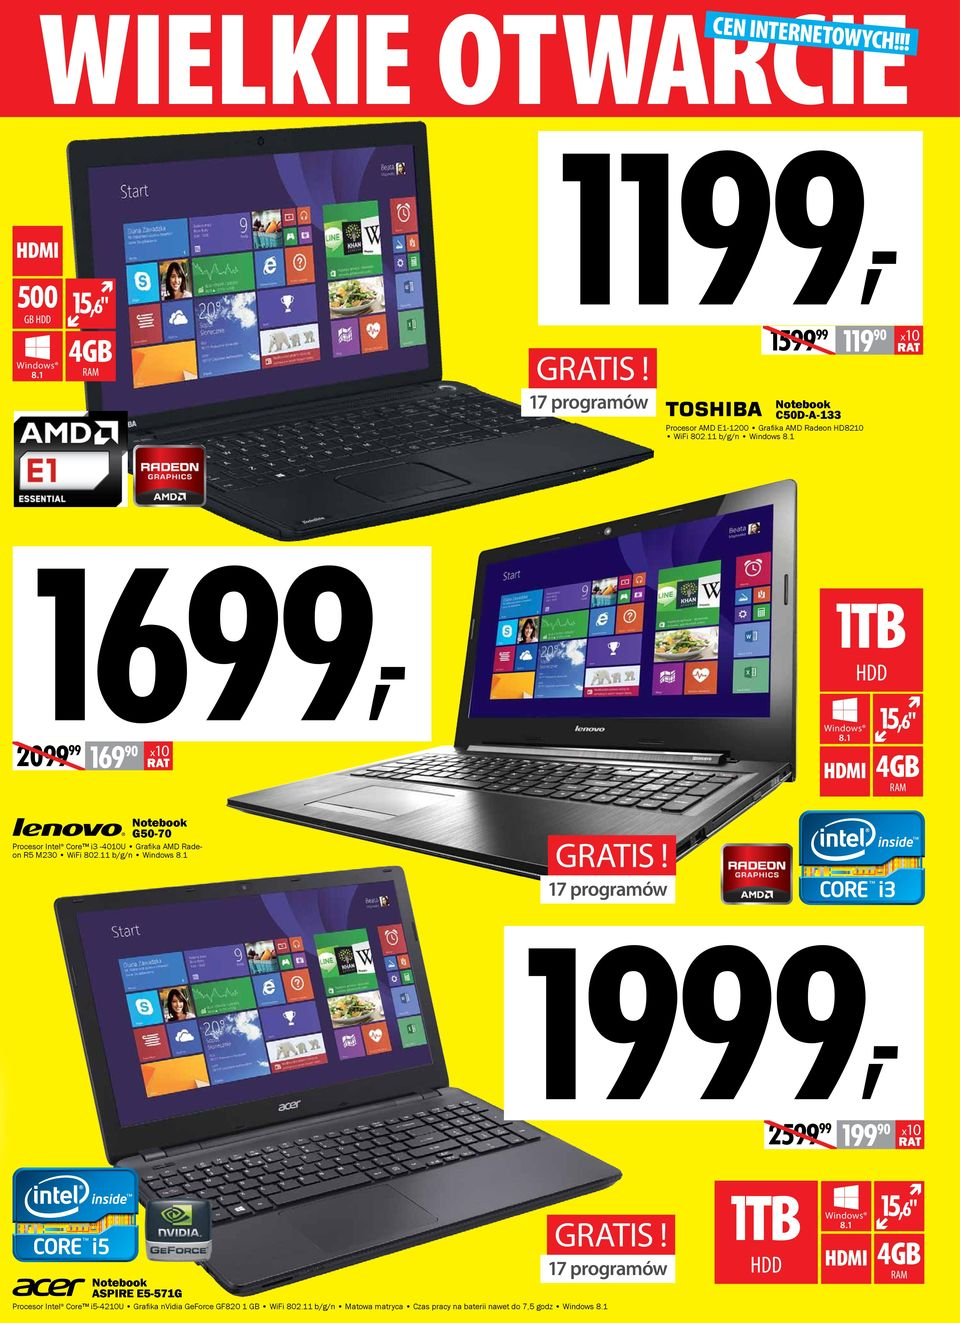 "1 15,6"" 4GB RAM Notebook G50-70 Procesor Intel Core i3-4010u Grafika AMD Radeon R5 M230 WiFi 802.11 b/g/n Windows 8.1 gratis!"